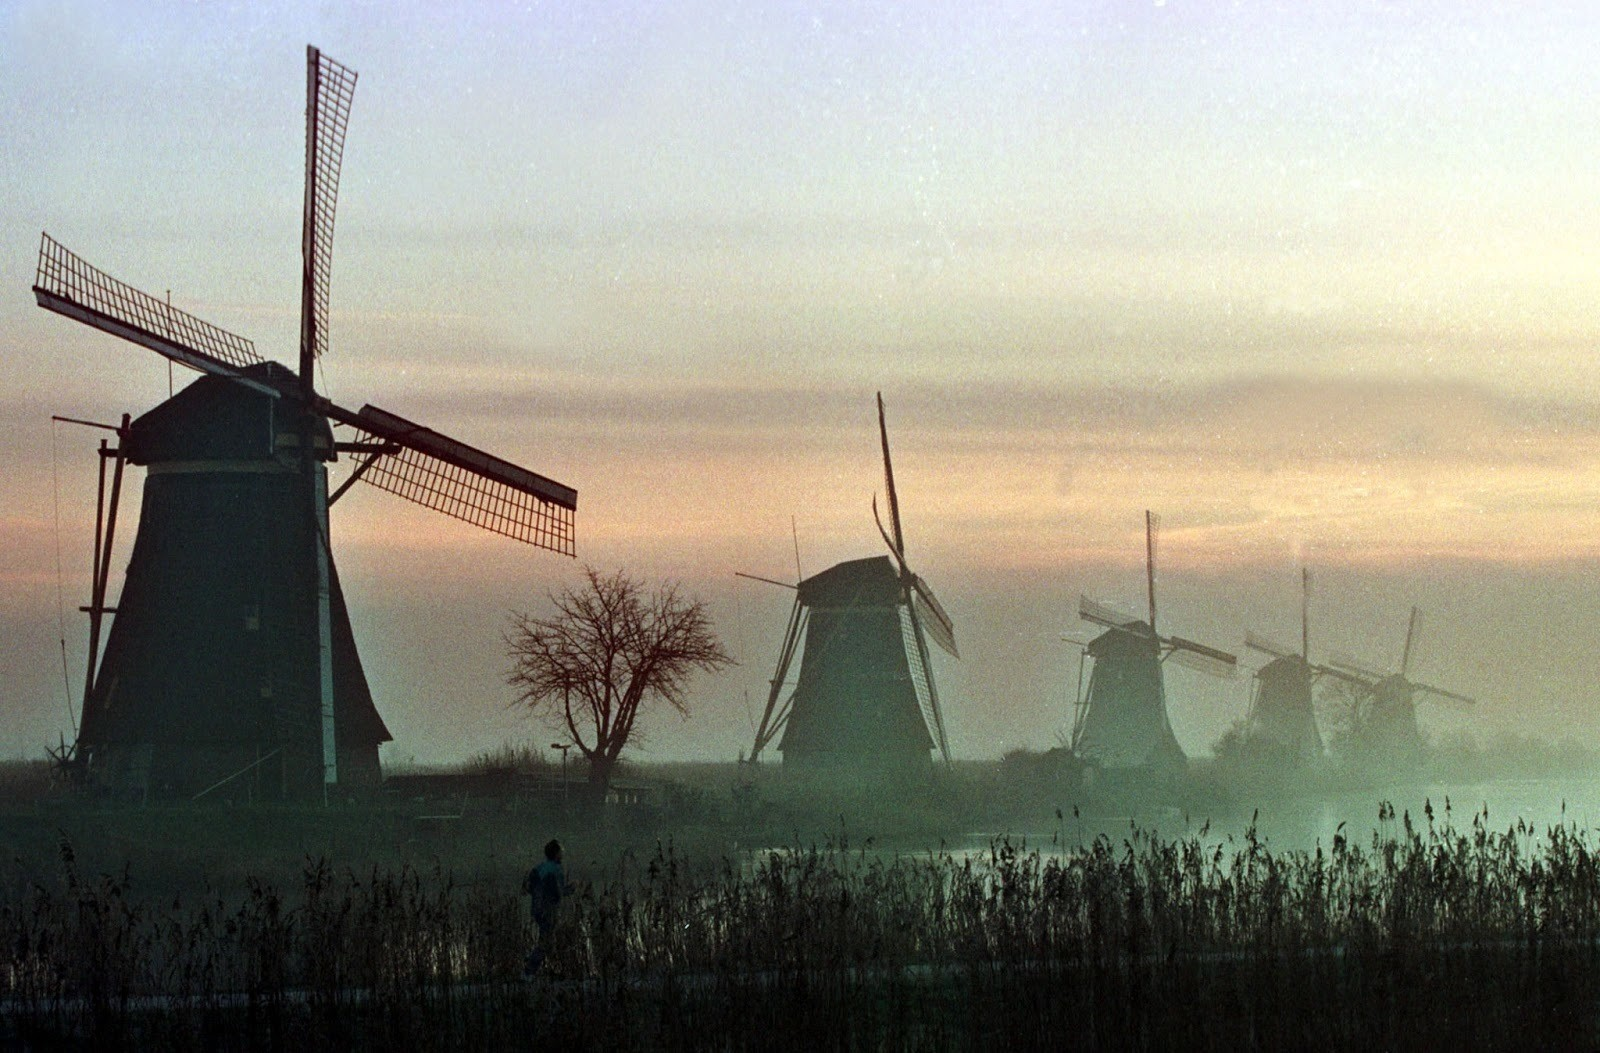 A lone jogger passes a windmill during an early morning jog through the Dutch town of Kinderdijk December 20. The unique Dutch windmills, which recently have been put on the United Nations list of world heritage sites, were used in the past to prevent the low-lands from flooding and have now become a popular tourist attraction. - PBEAHUMRVCI